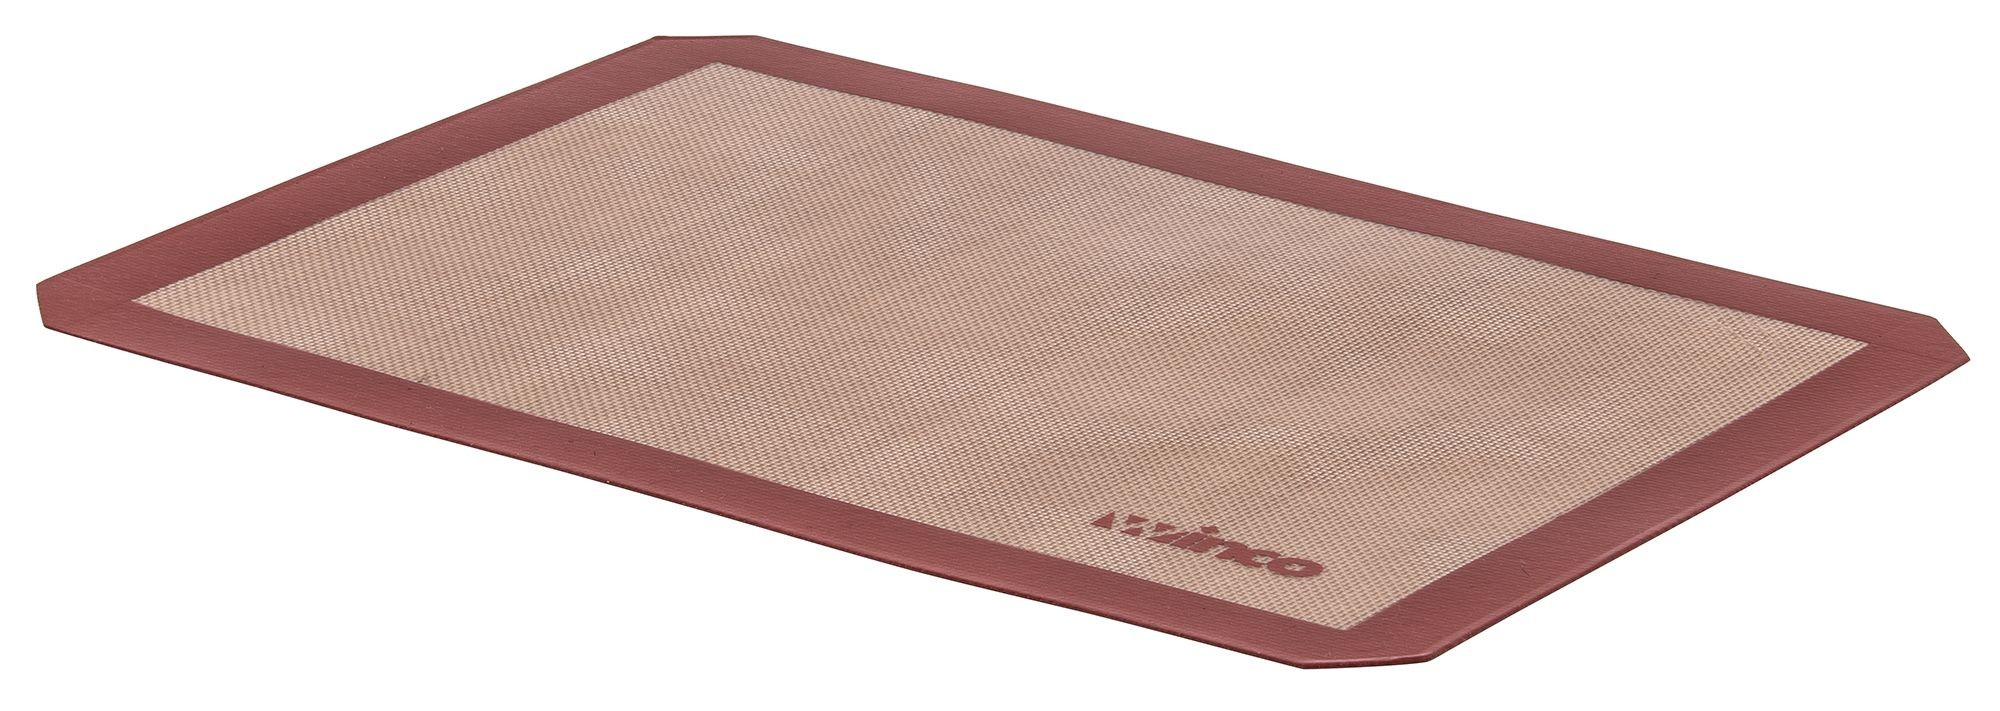 """Winco SBS-16 Silicone Square Baking Mat 11-7/8"""" x 16-1/2"""""""